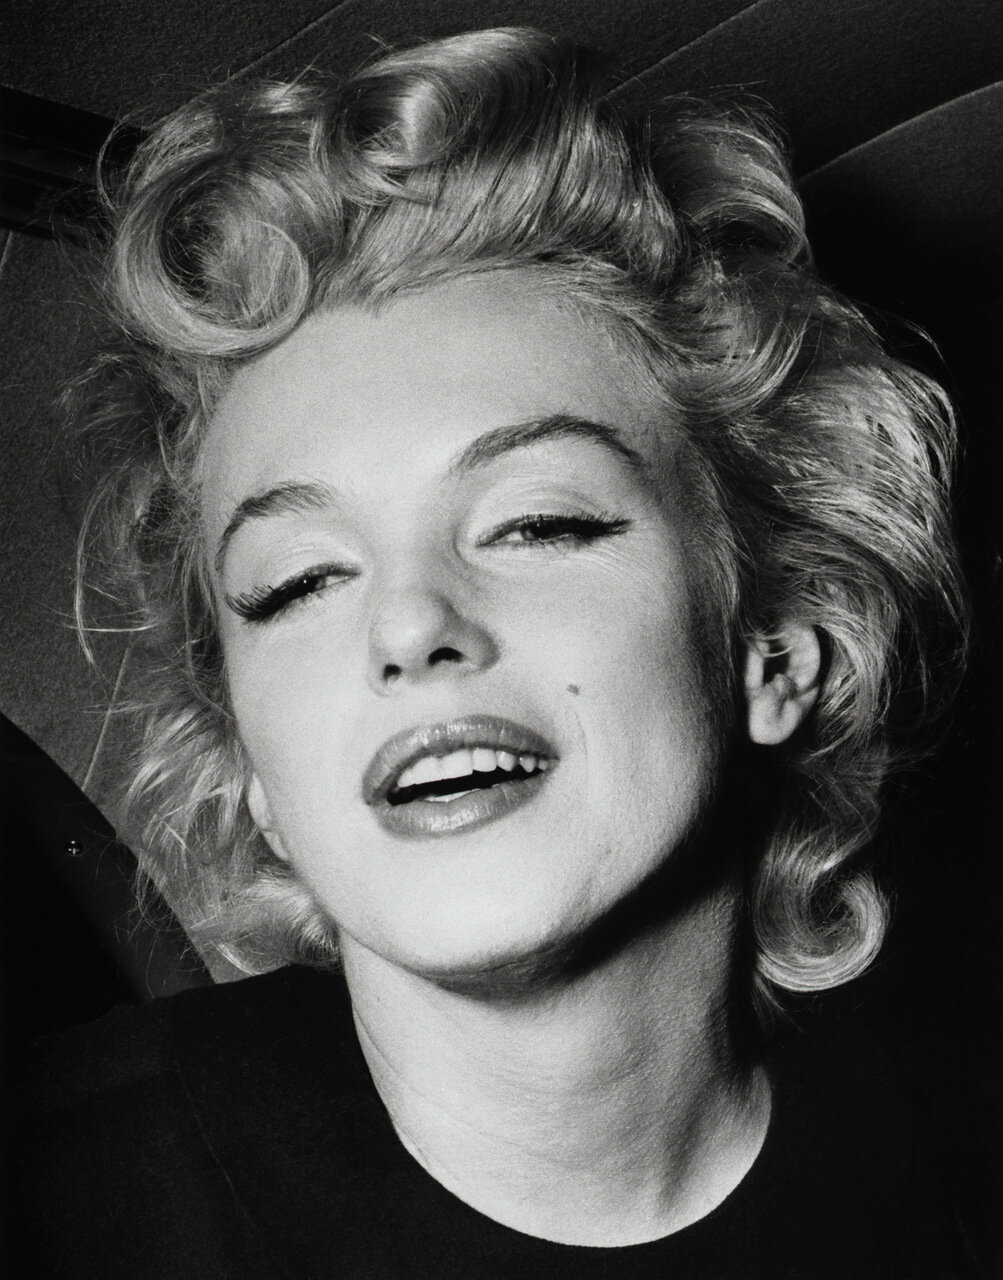 Close-Up of Marilyn Monroe